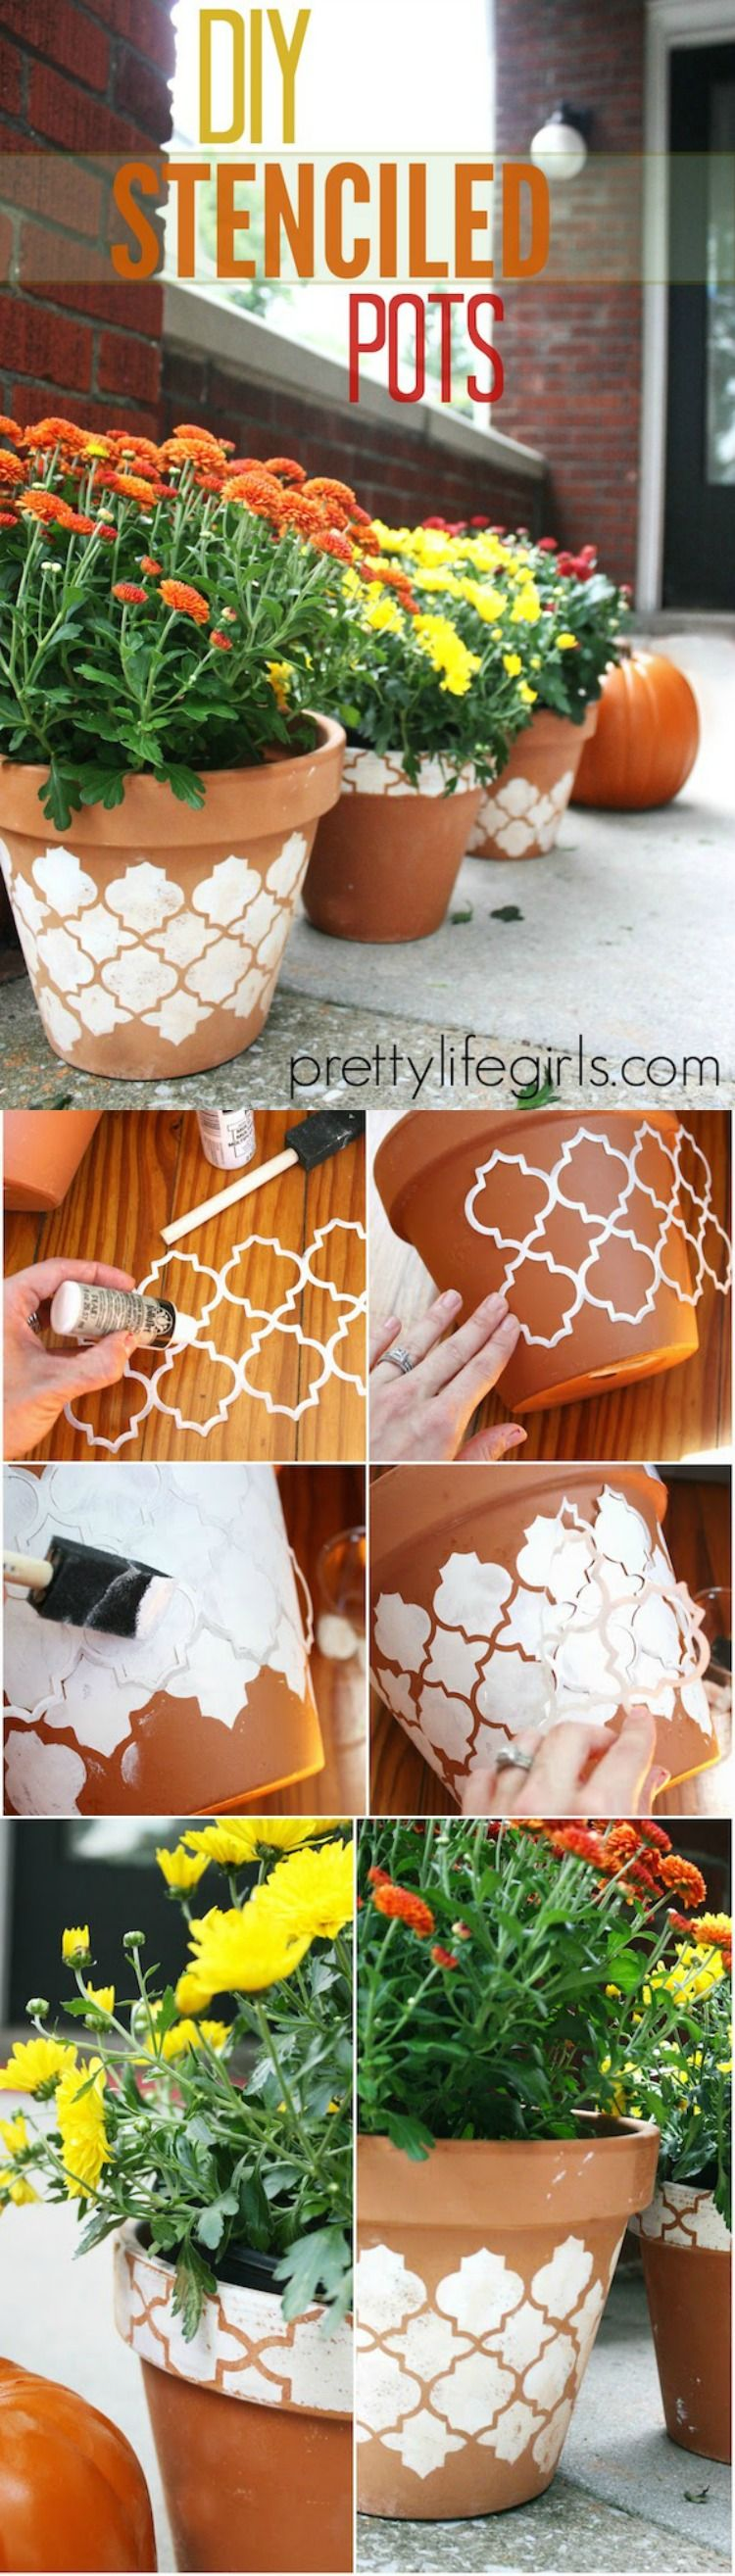 How to Stencil a Clay Pot - DIY Candy